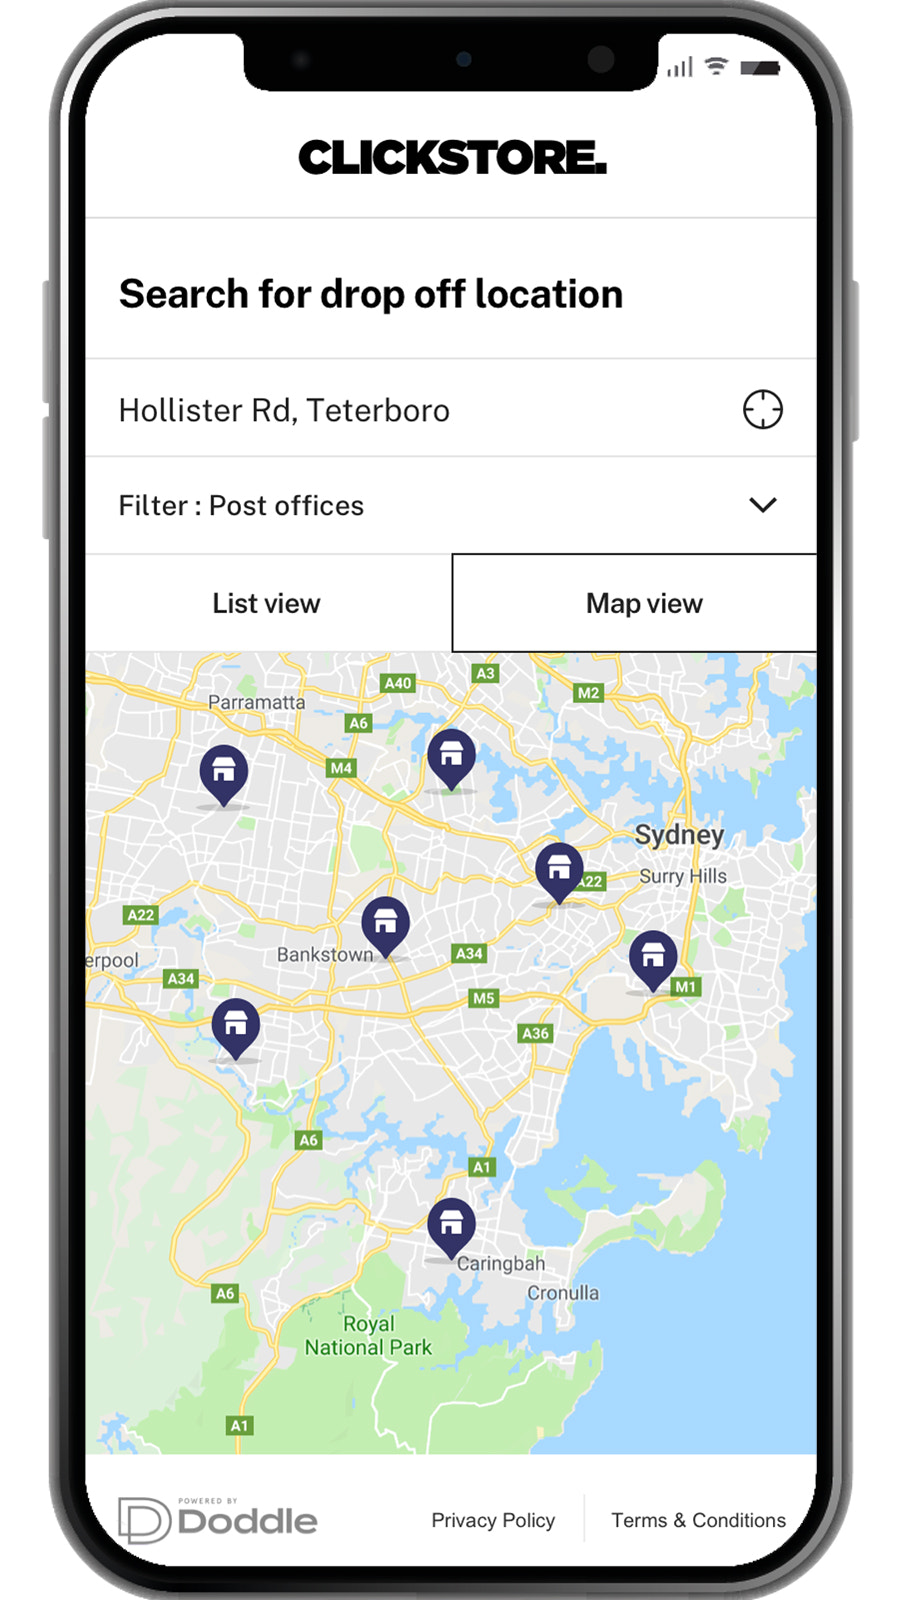 Customer Can Select Drop Off Location